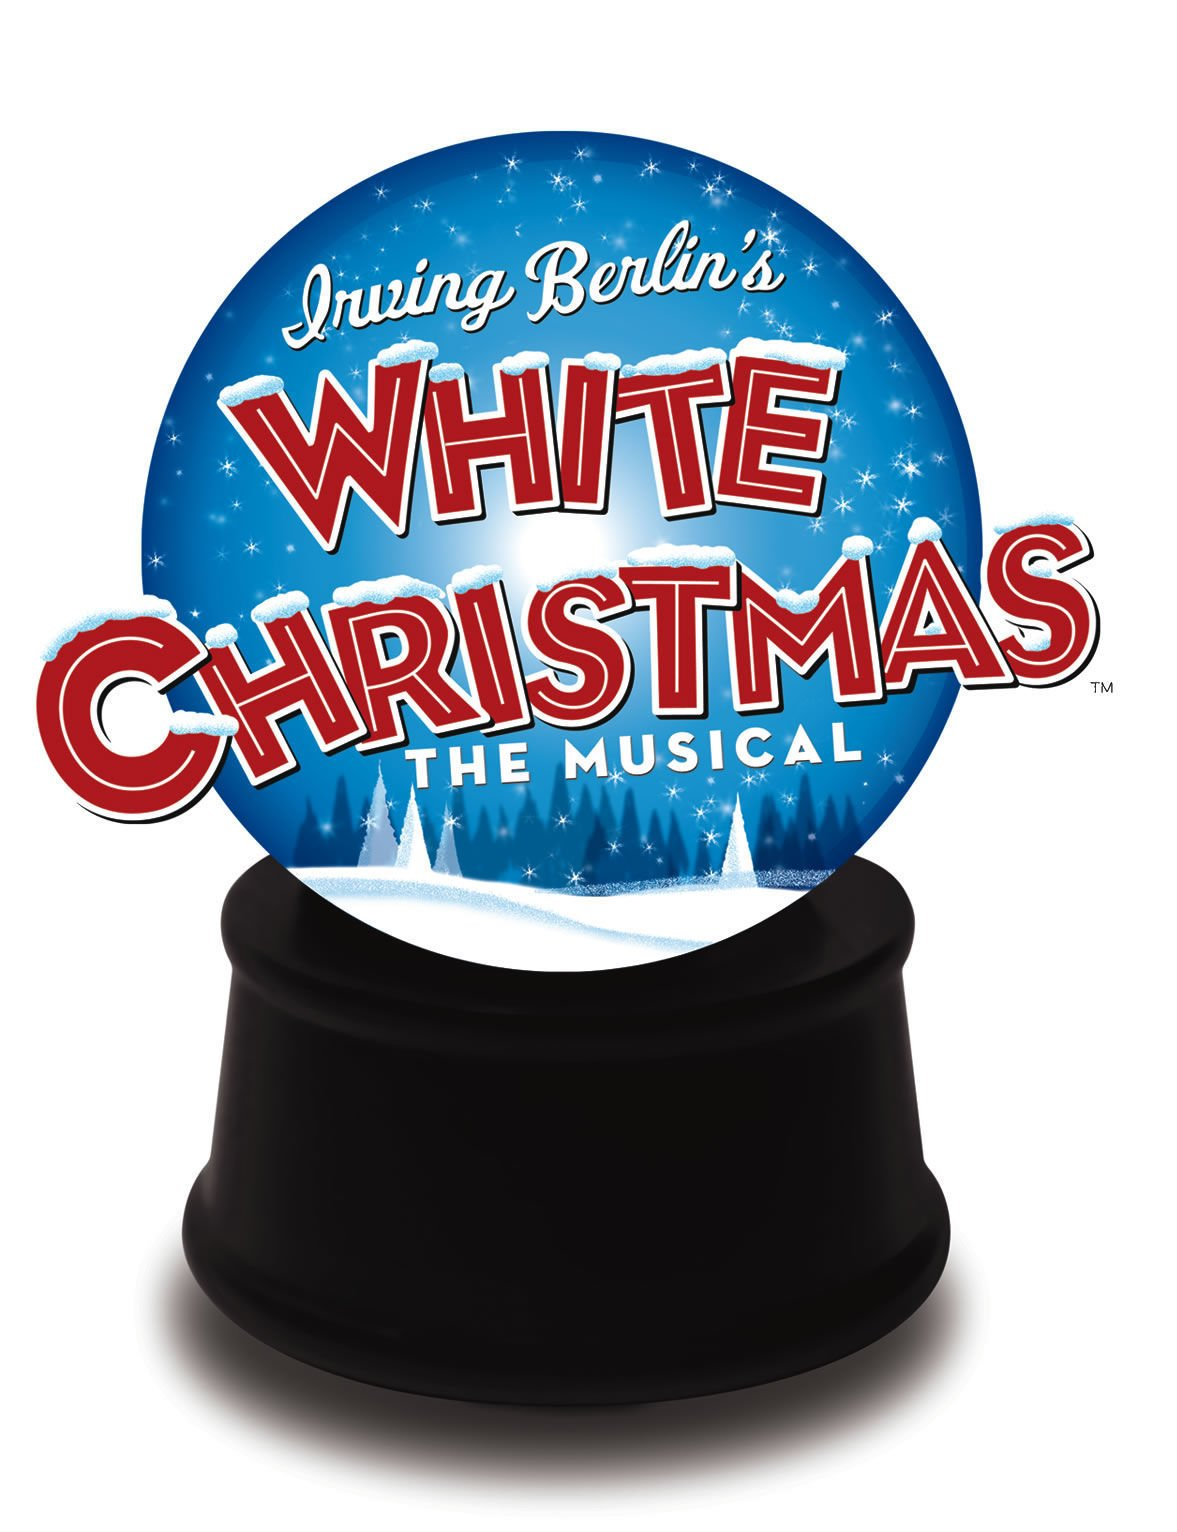 White Christmas logo - updated